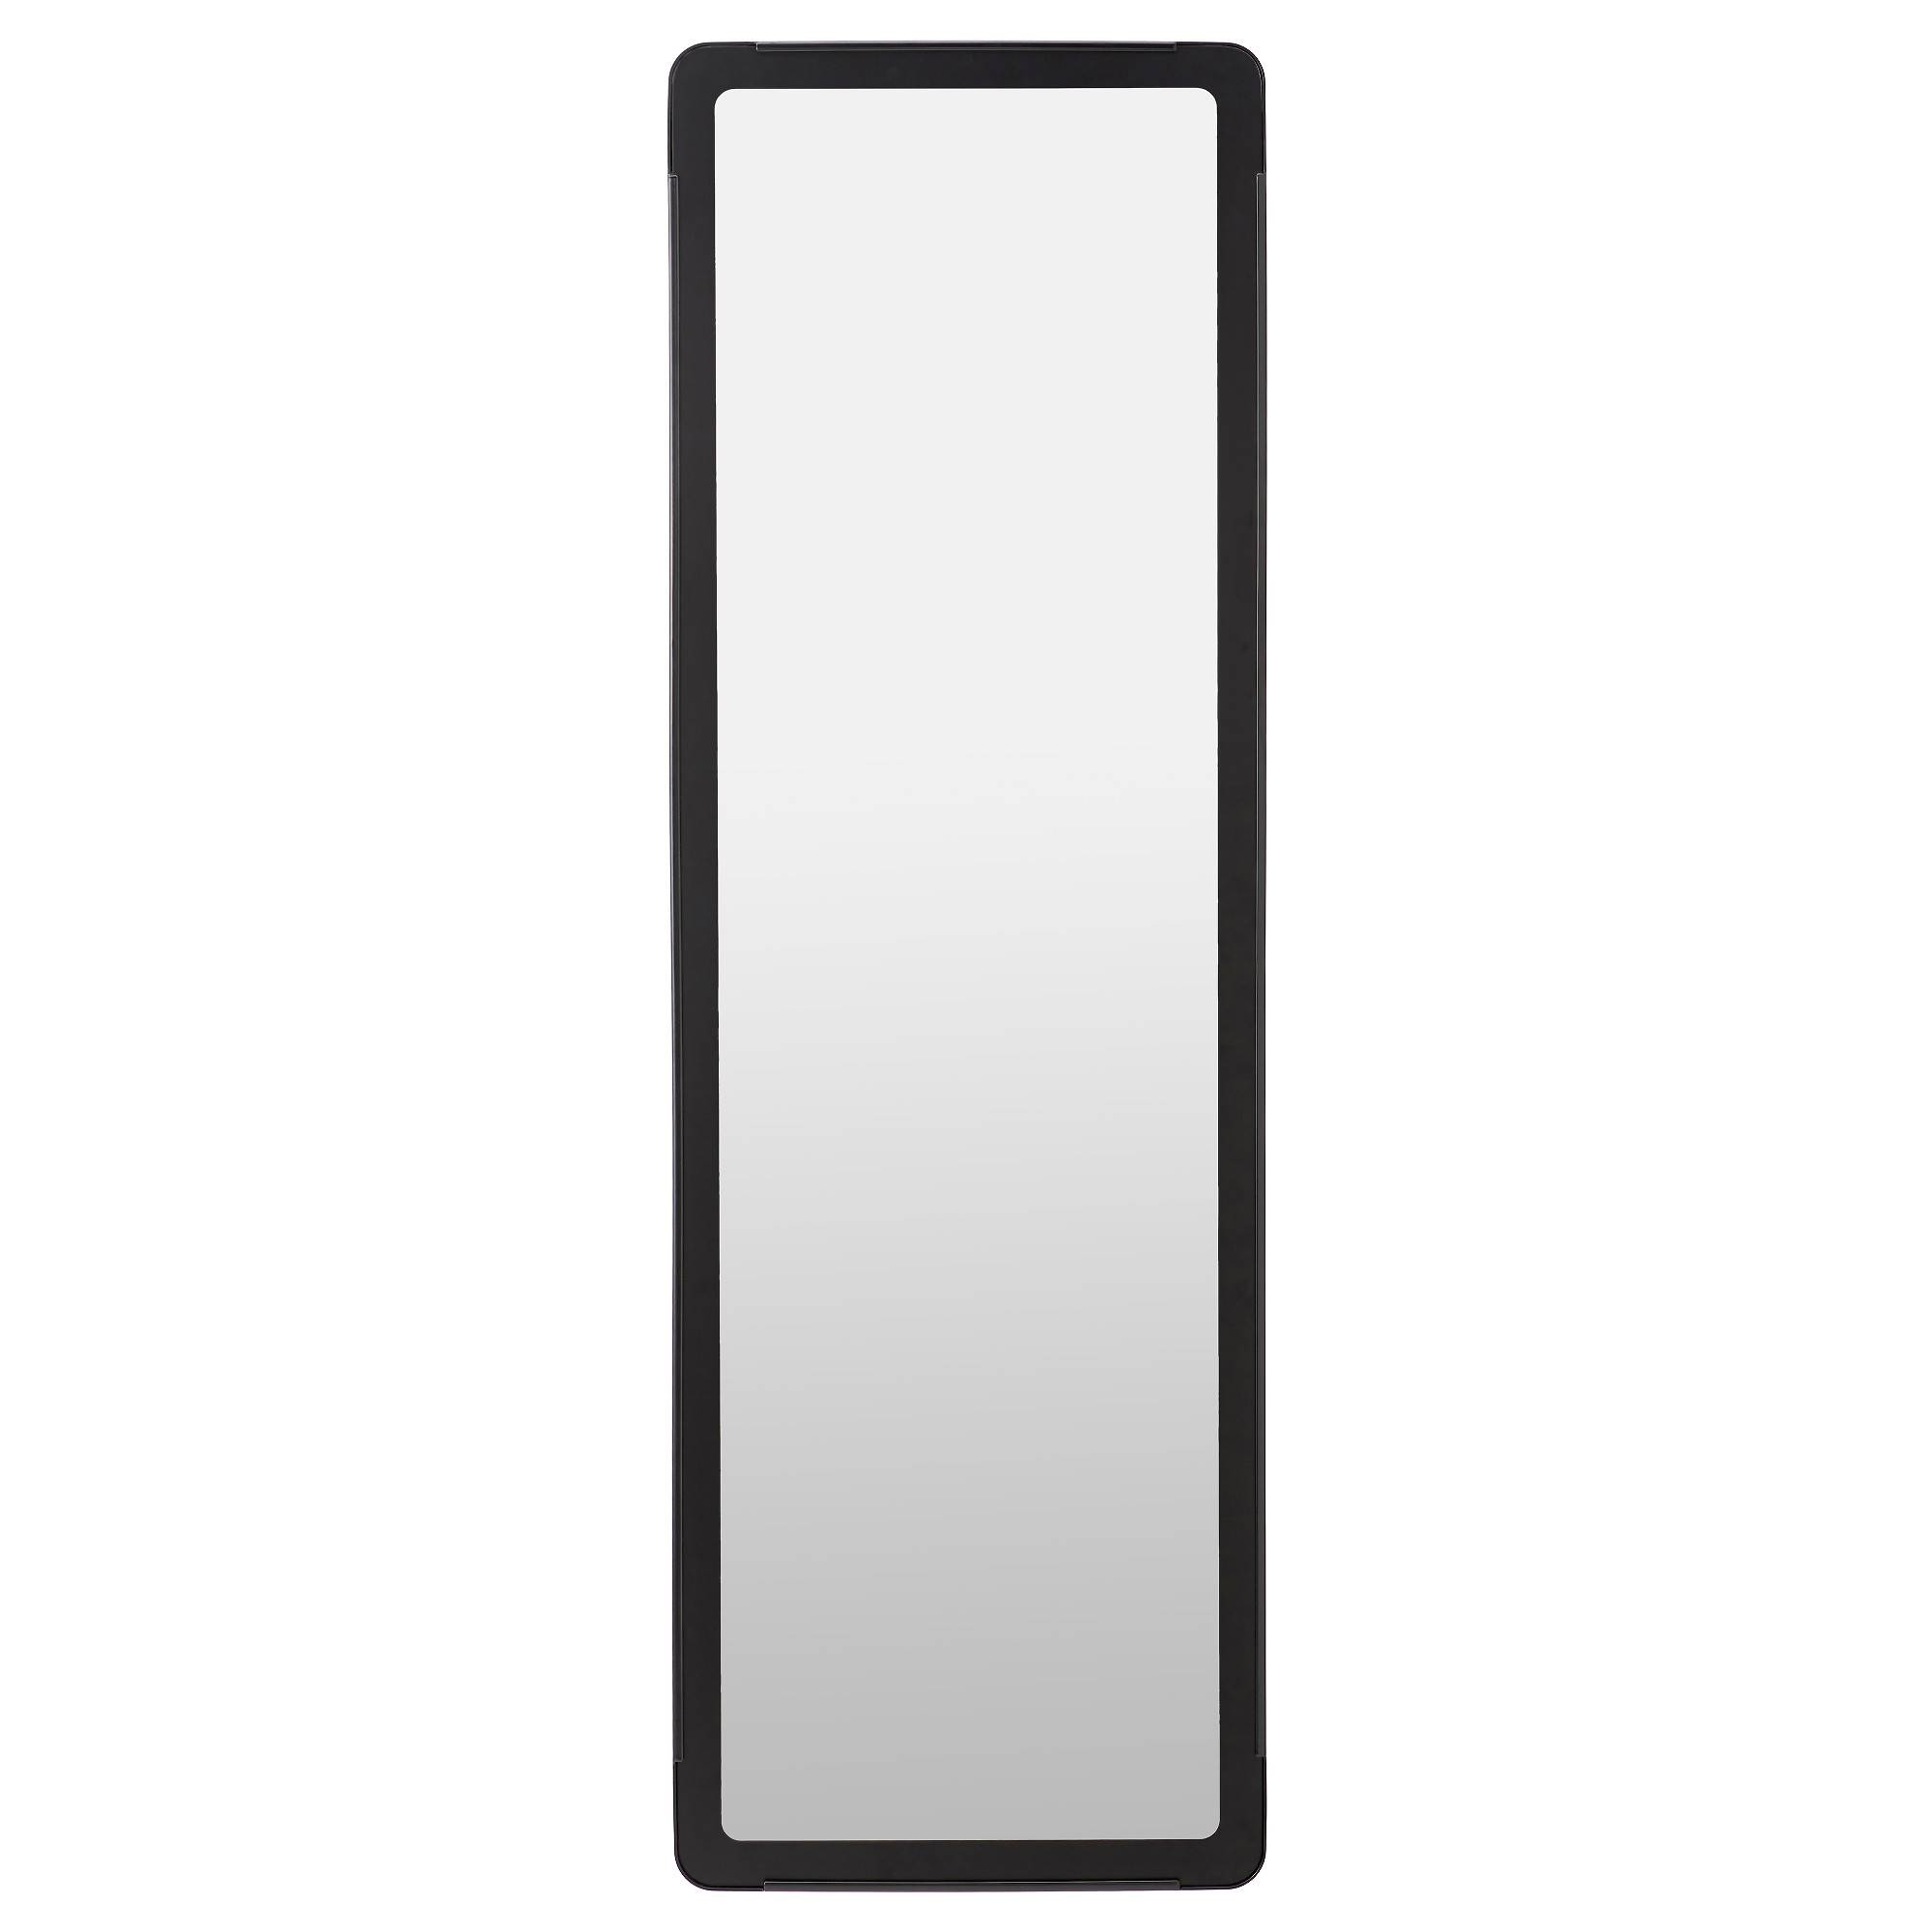 Full-Length Mirrors - Ikea inside Extra Large Free Standing Mirrors (Image 17 of 25)